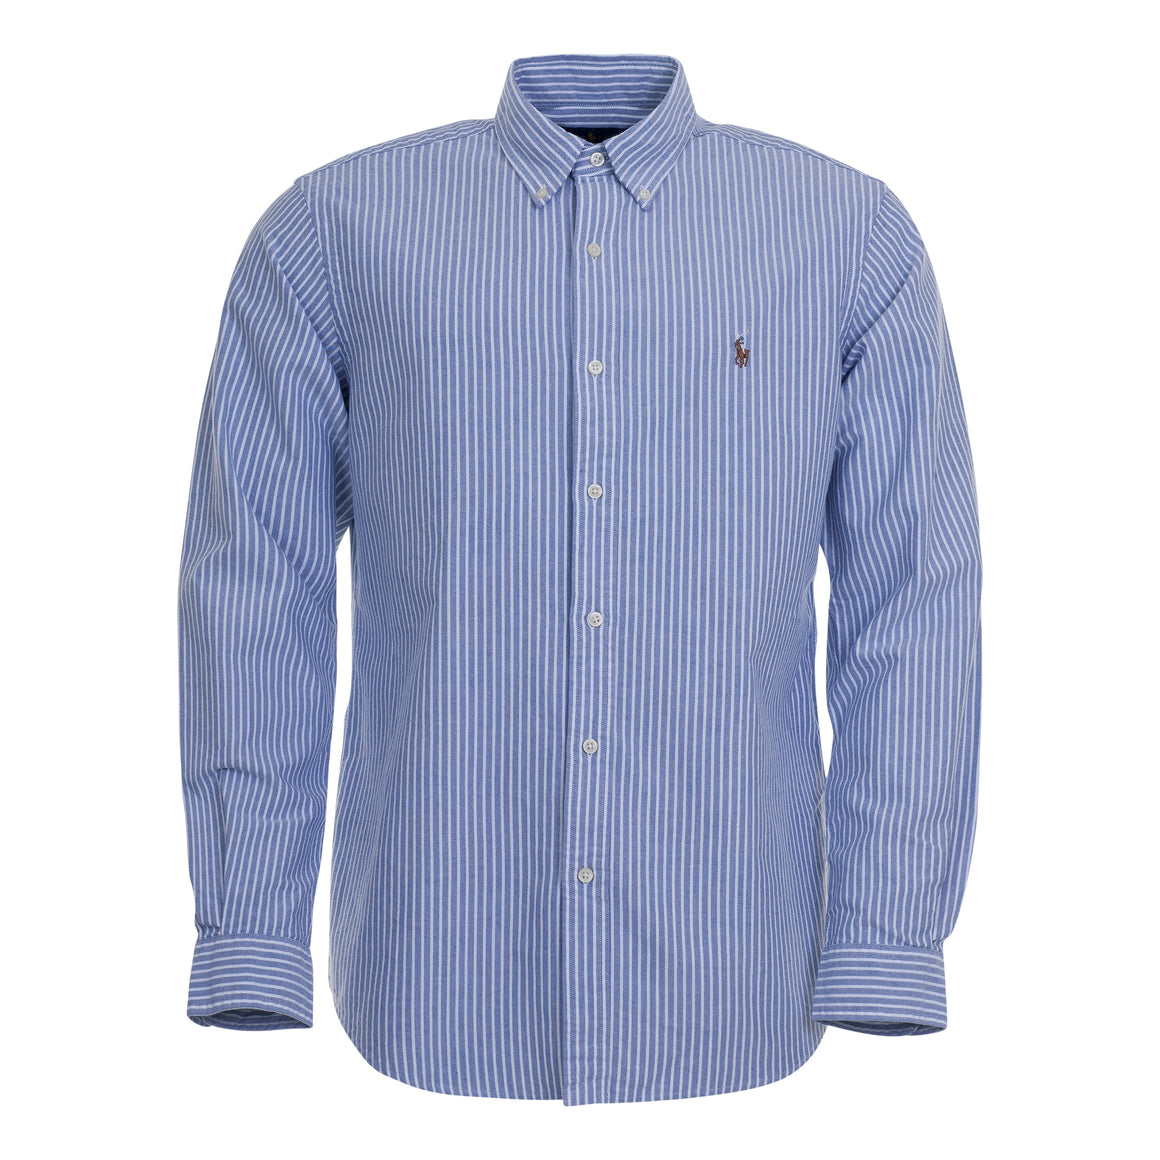 Long Sleeve Stripe Shirt for Men in Blue & White